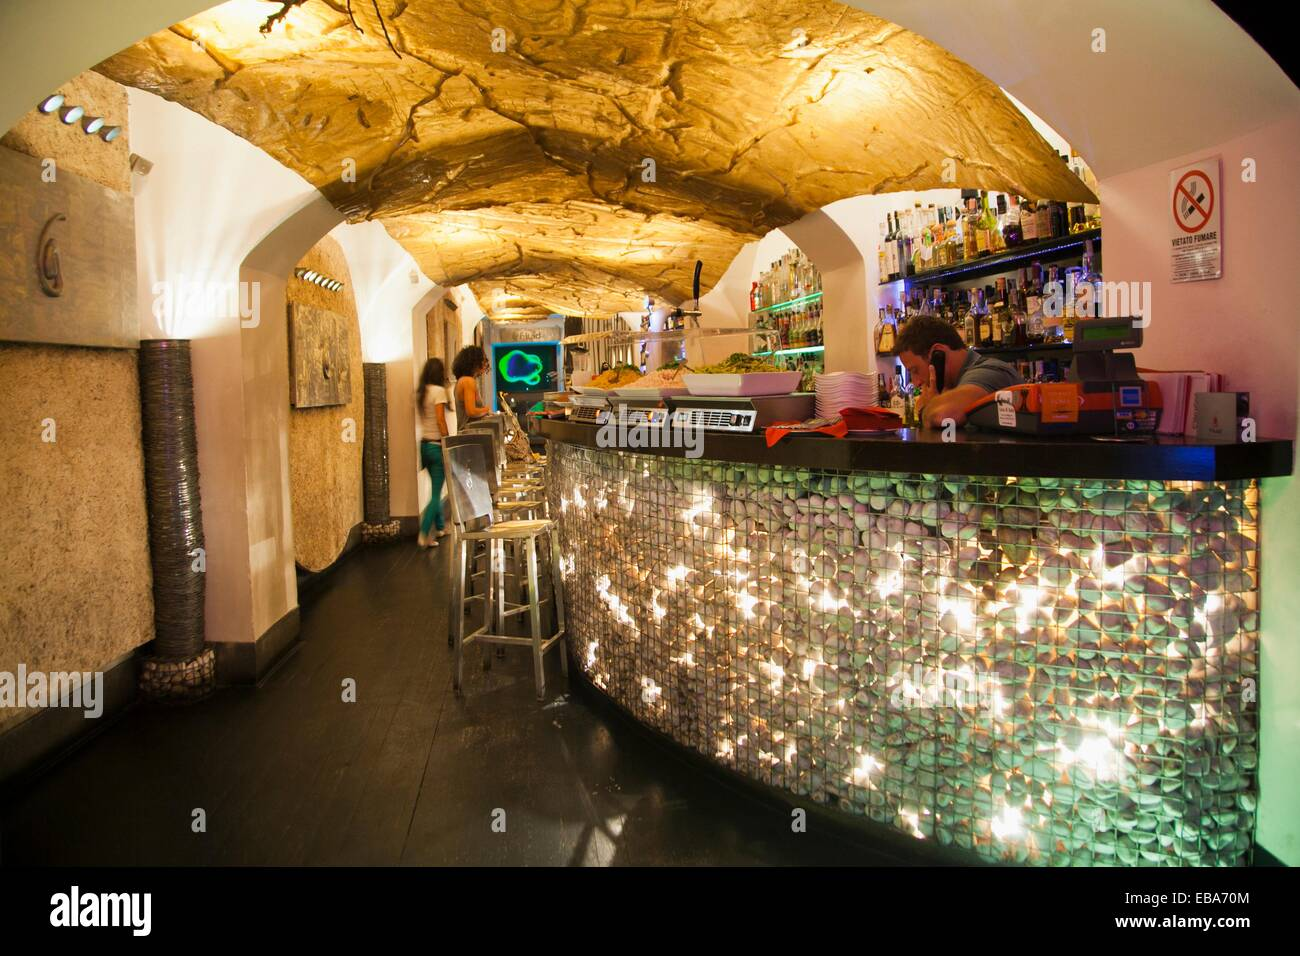 Fluid Cocktail & wine bar, Via del Governo Vecchio, Rome, Lazio, Italy. - Stock Image